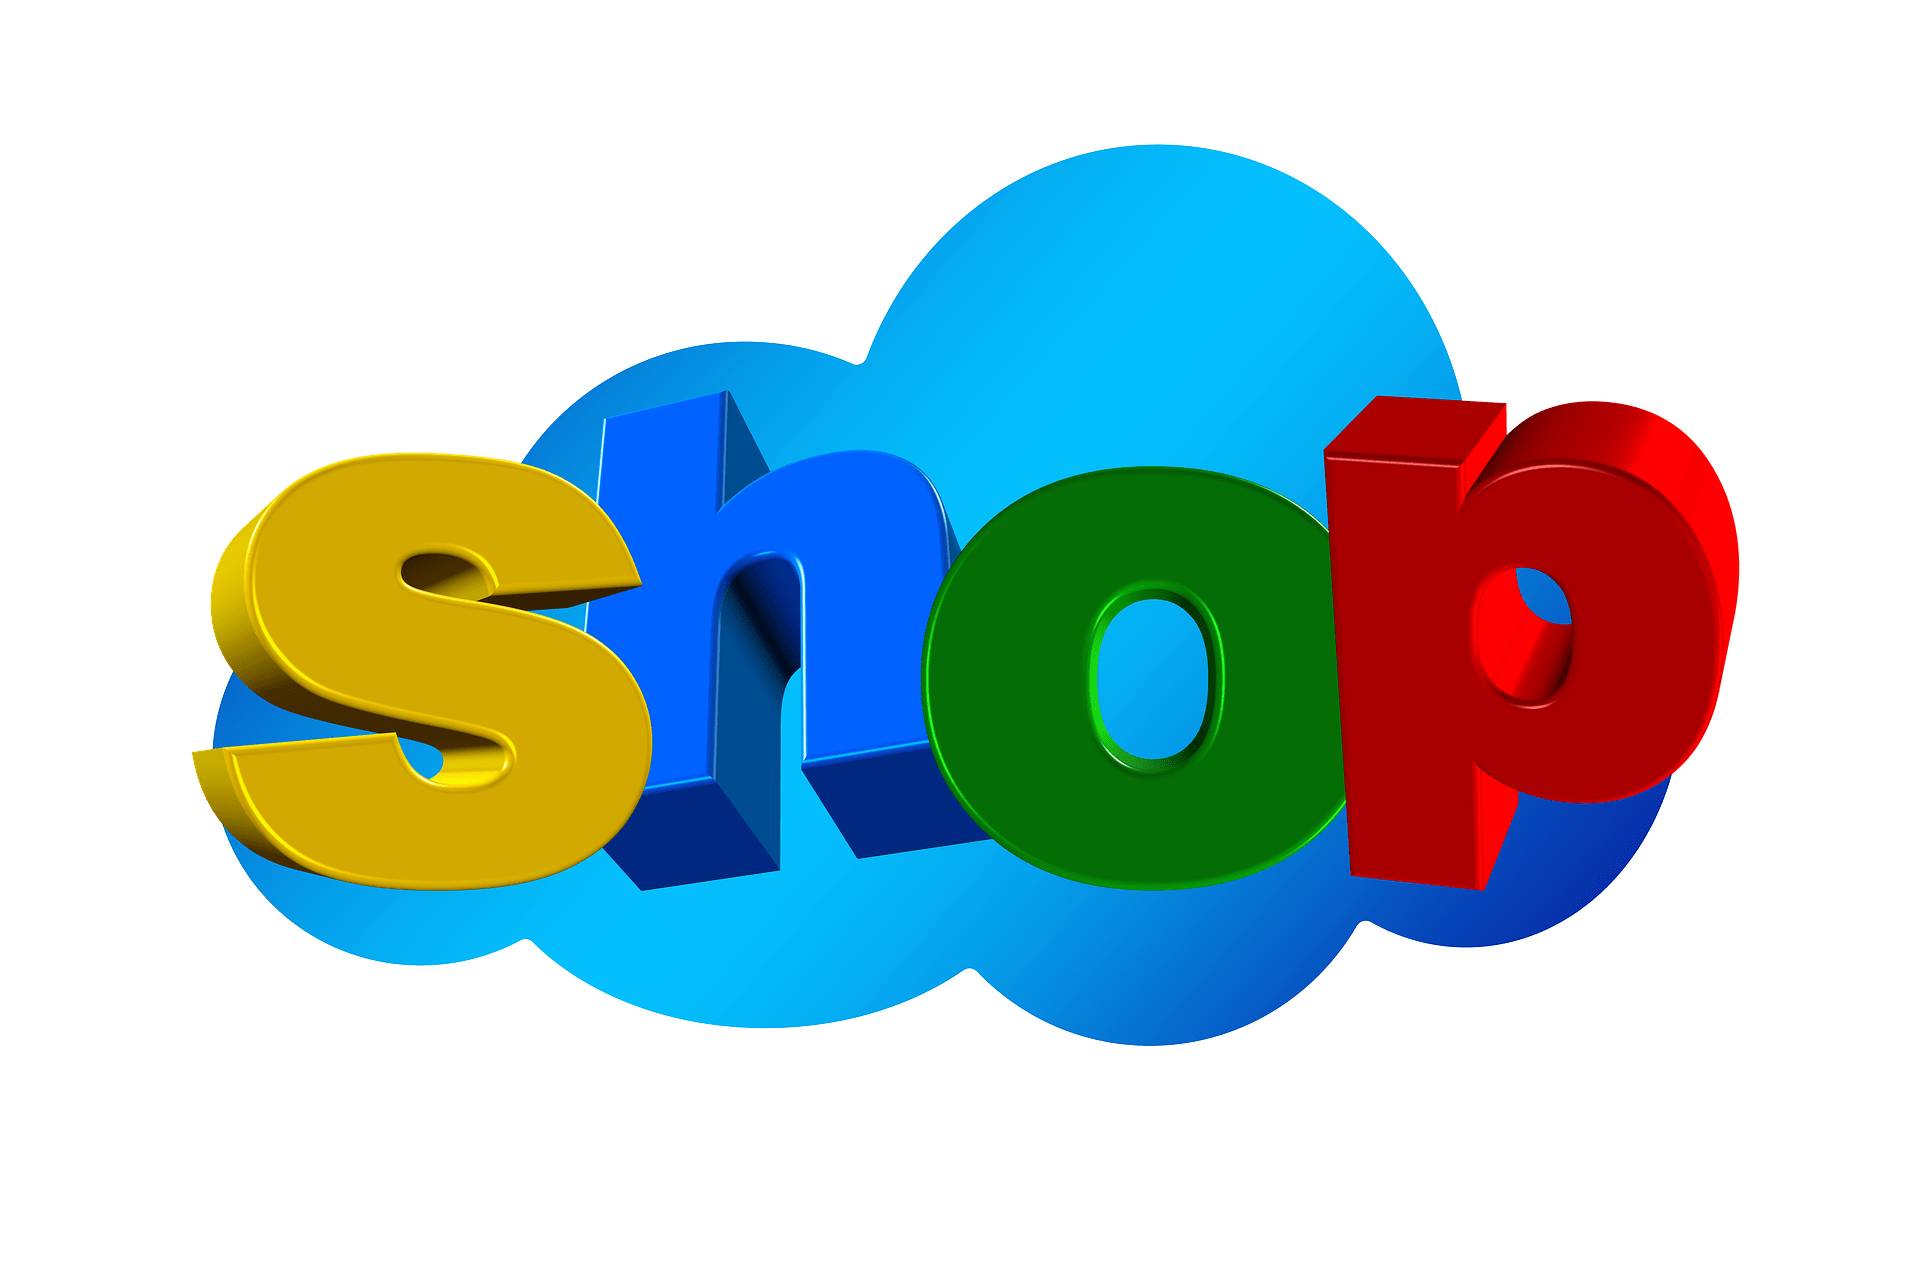 Ghana online shopping guide for beginners